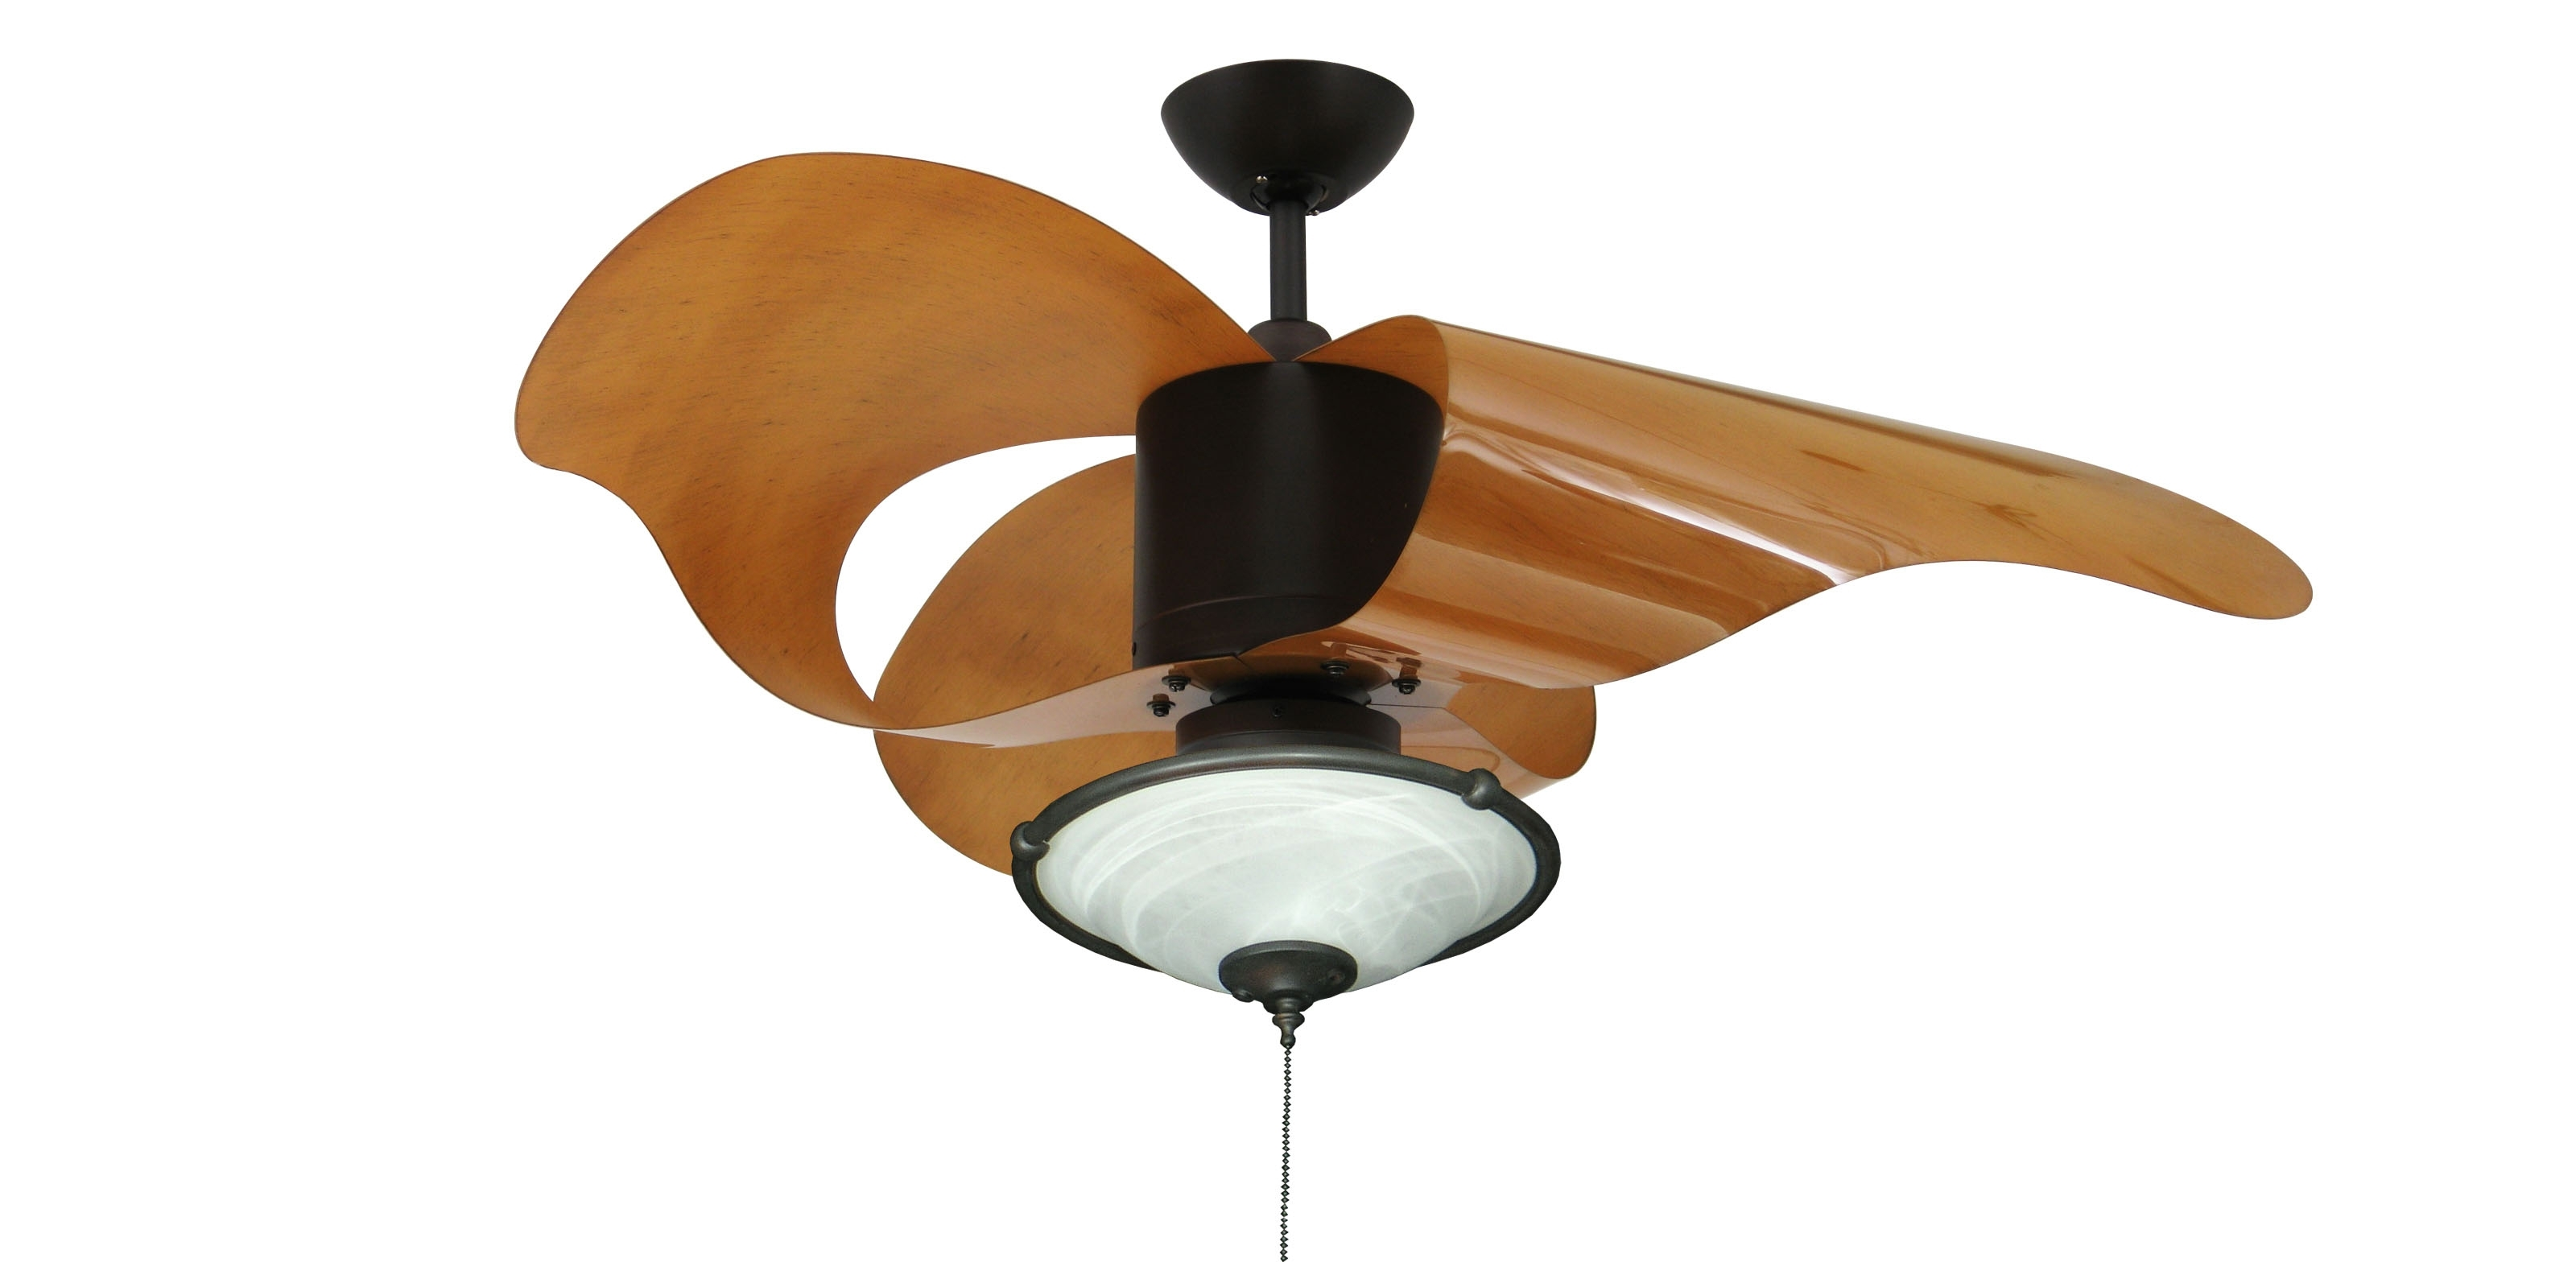 Outdoor Ceiling Fan With Light And Remote – Tariqalhanaee Inside Trendy Outdoor Ceiling Fans With Light And Remote (Gallery 10 of 20)